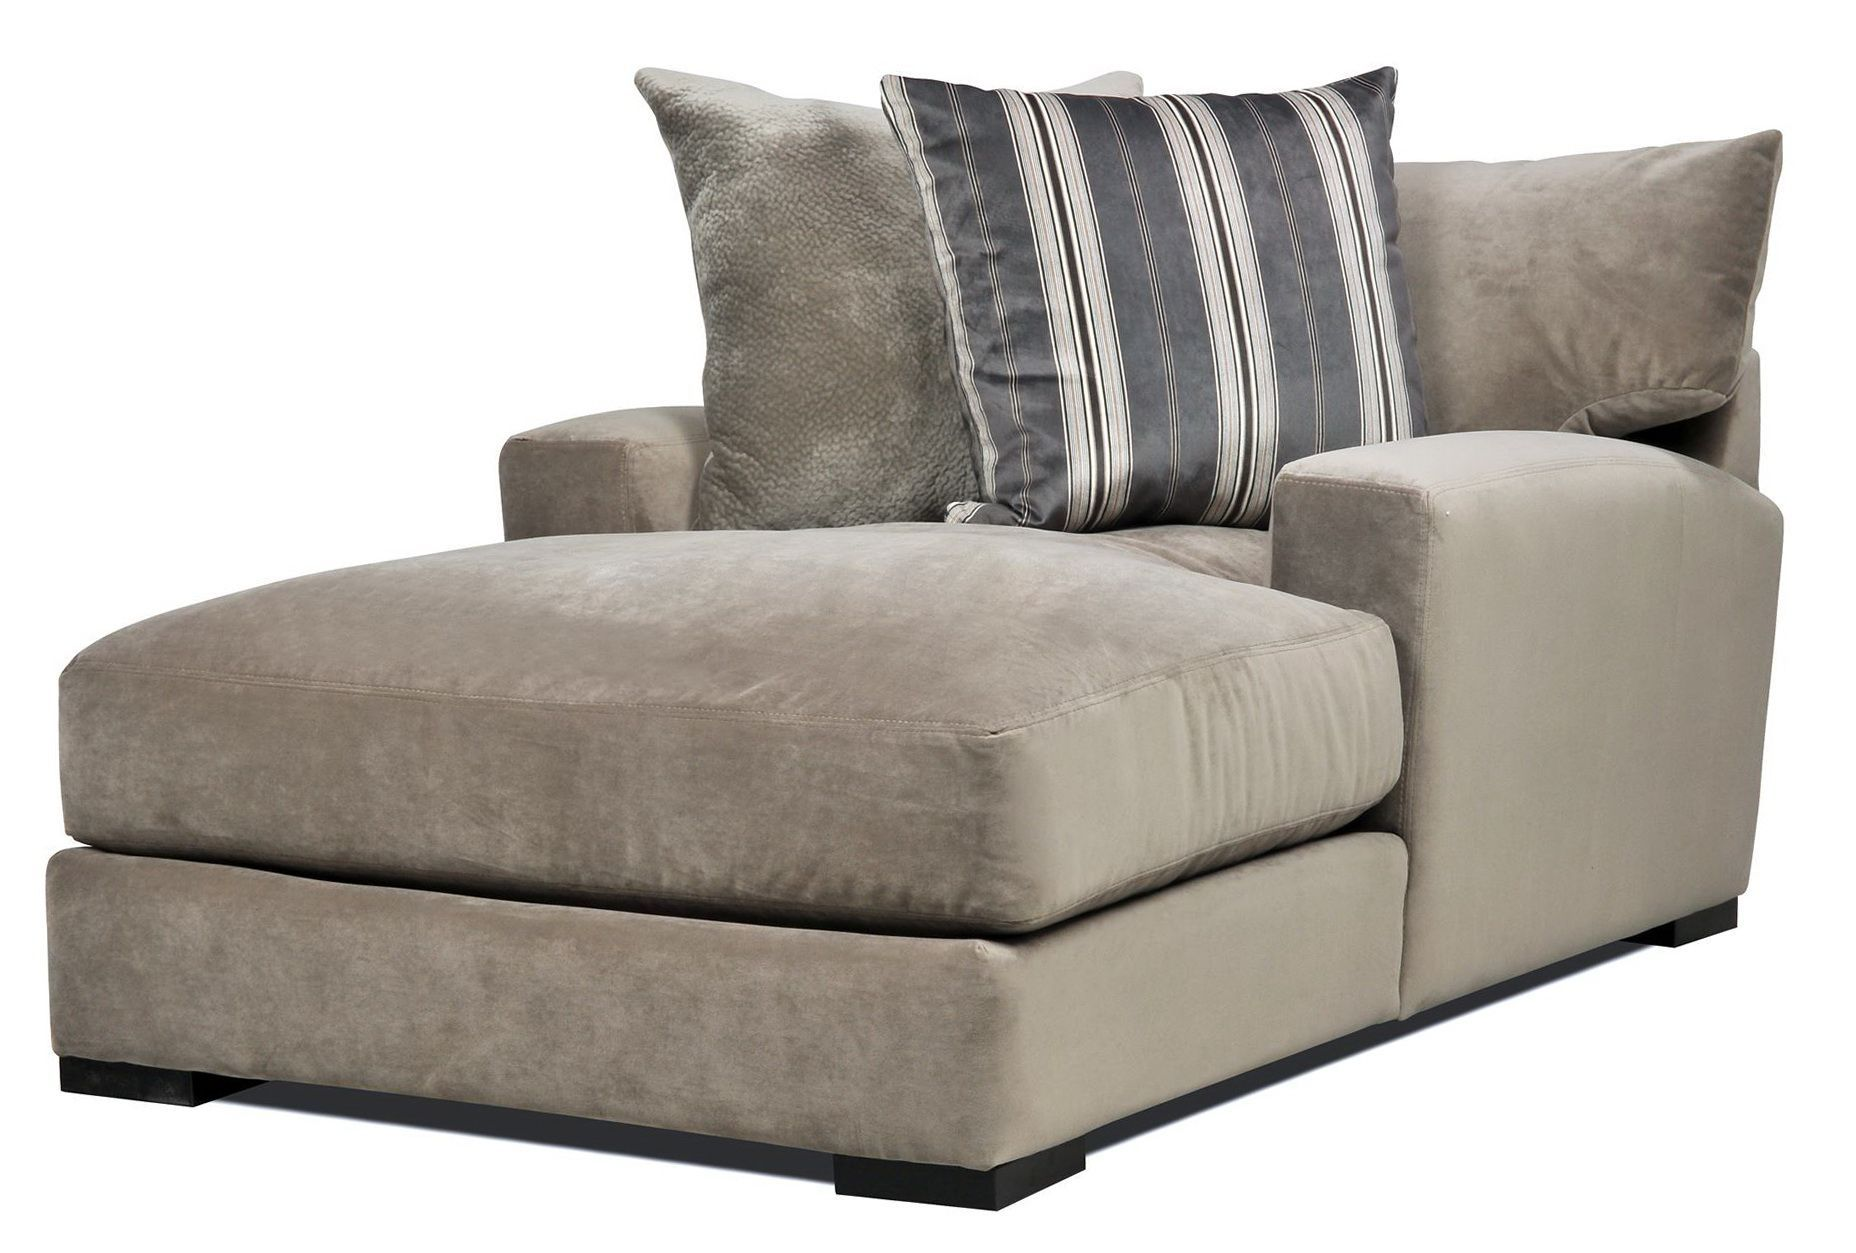 Double Chaise Lounge Chair Indoor Chaise Lounge Indoor Double